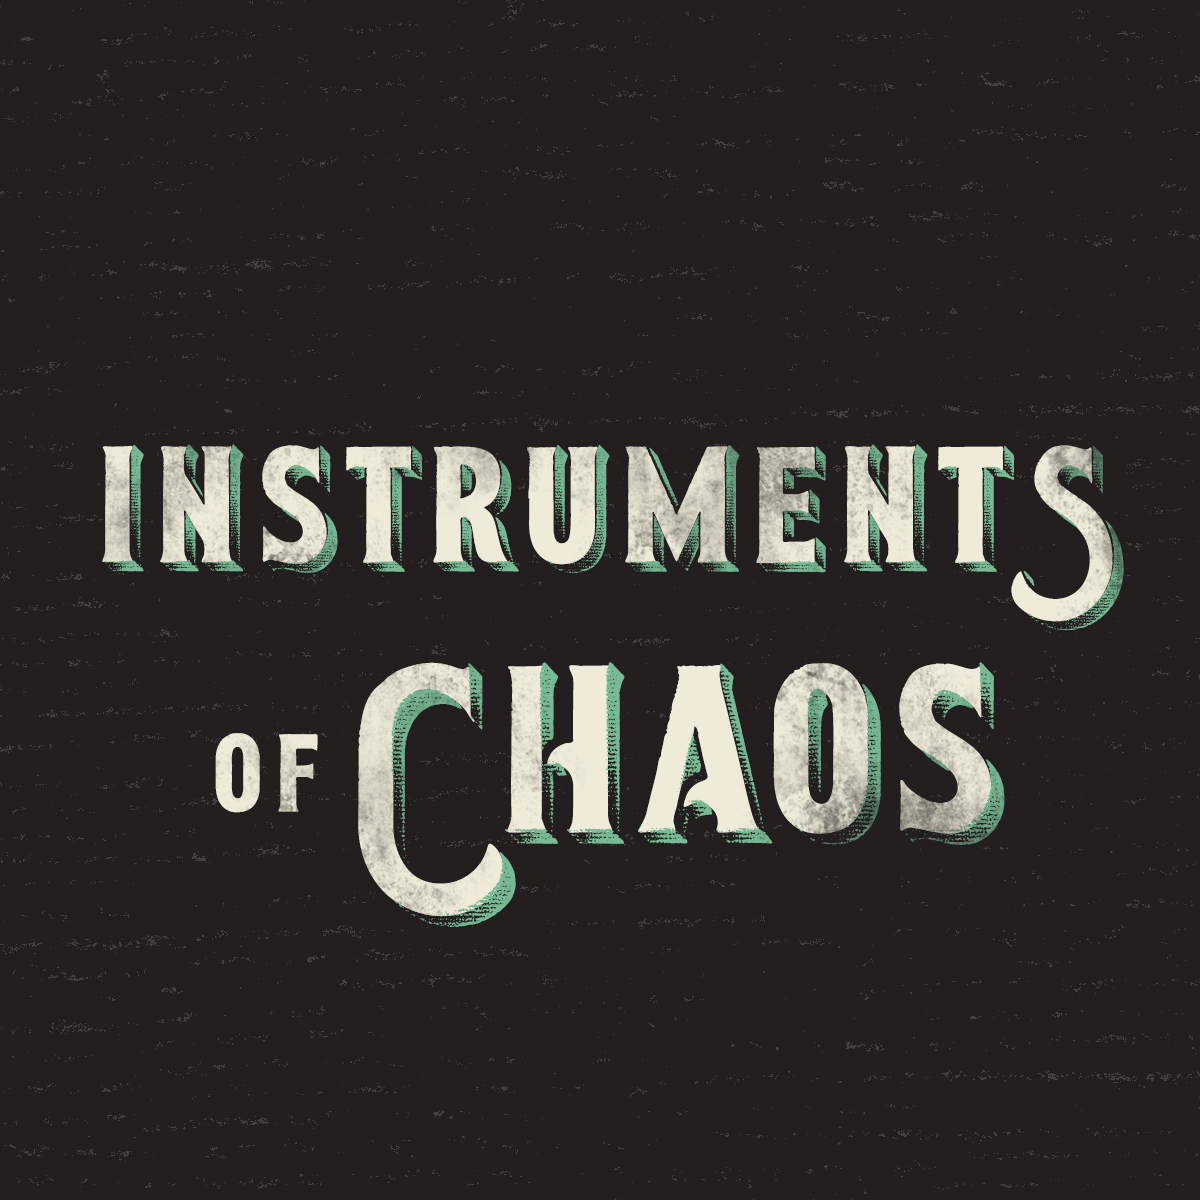 Instruments of Chaos